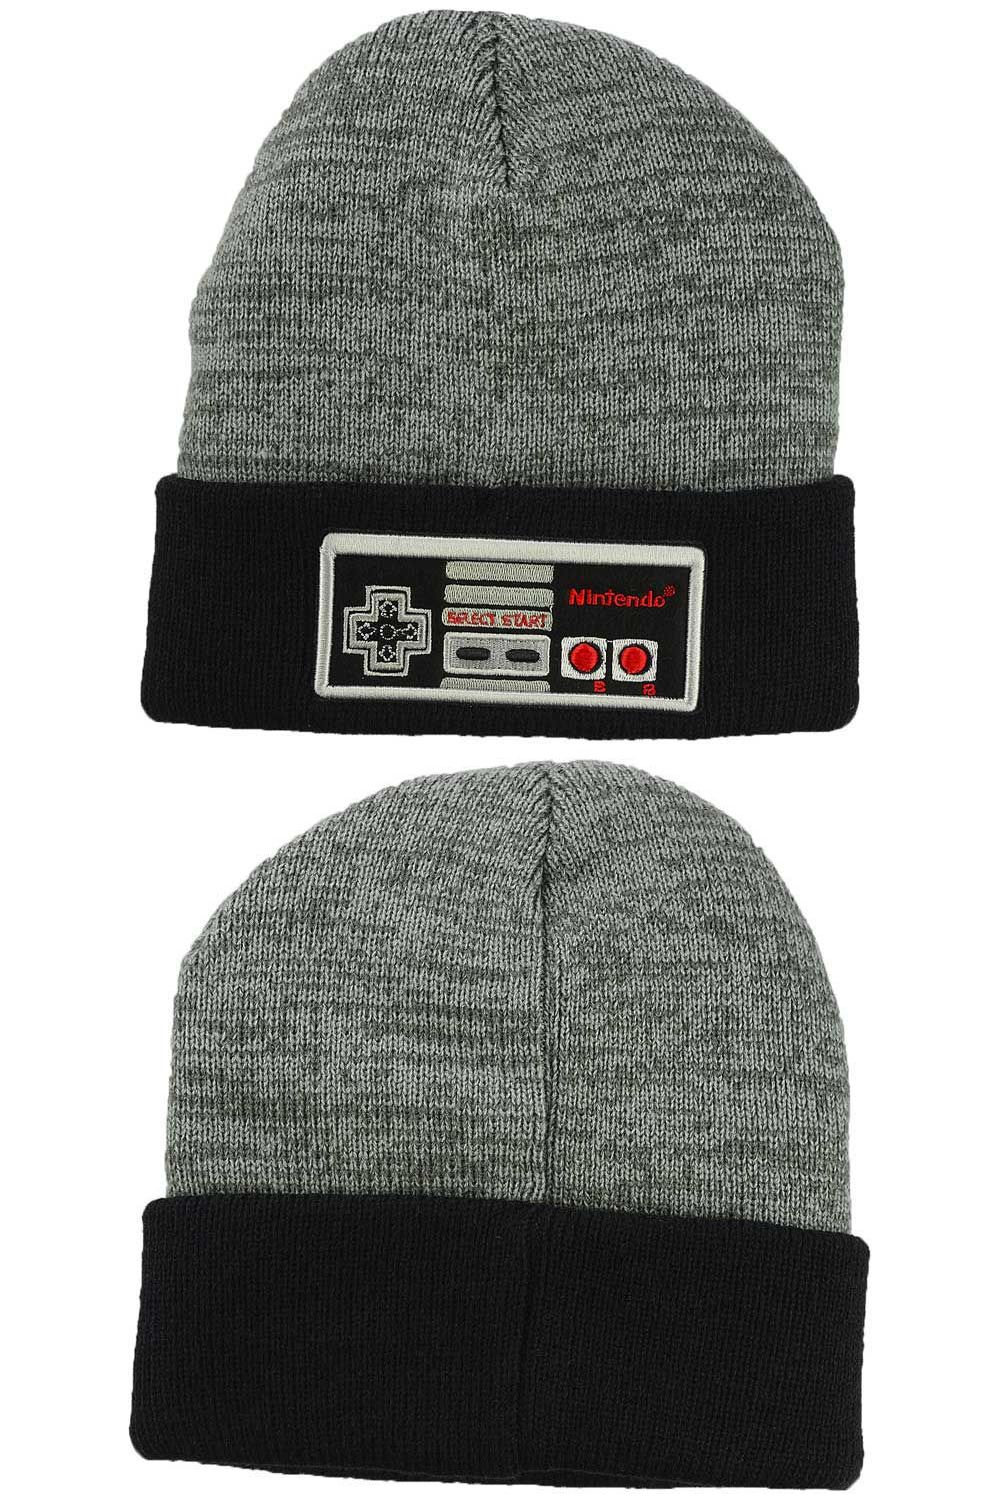 d8fd04f6892 Hats 163543  New Licensed Nintendo Classic Controller Knit Hat Beanie - Unisex  Adult 1 Size -  BUY IT NOW ONLY   14.99 on  eBay  licensed  nintendo   classic ...